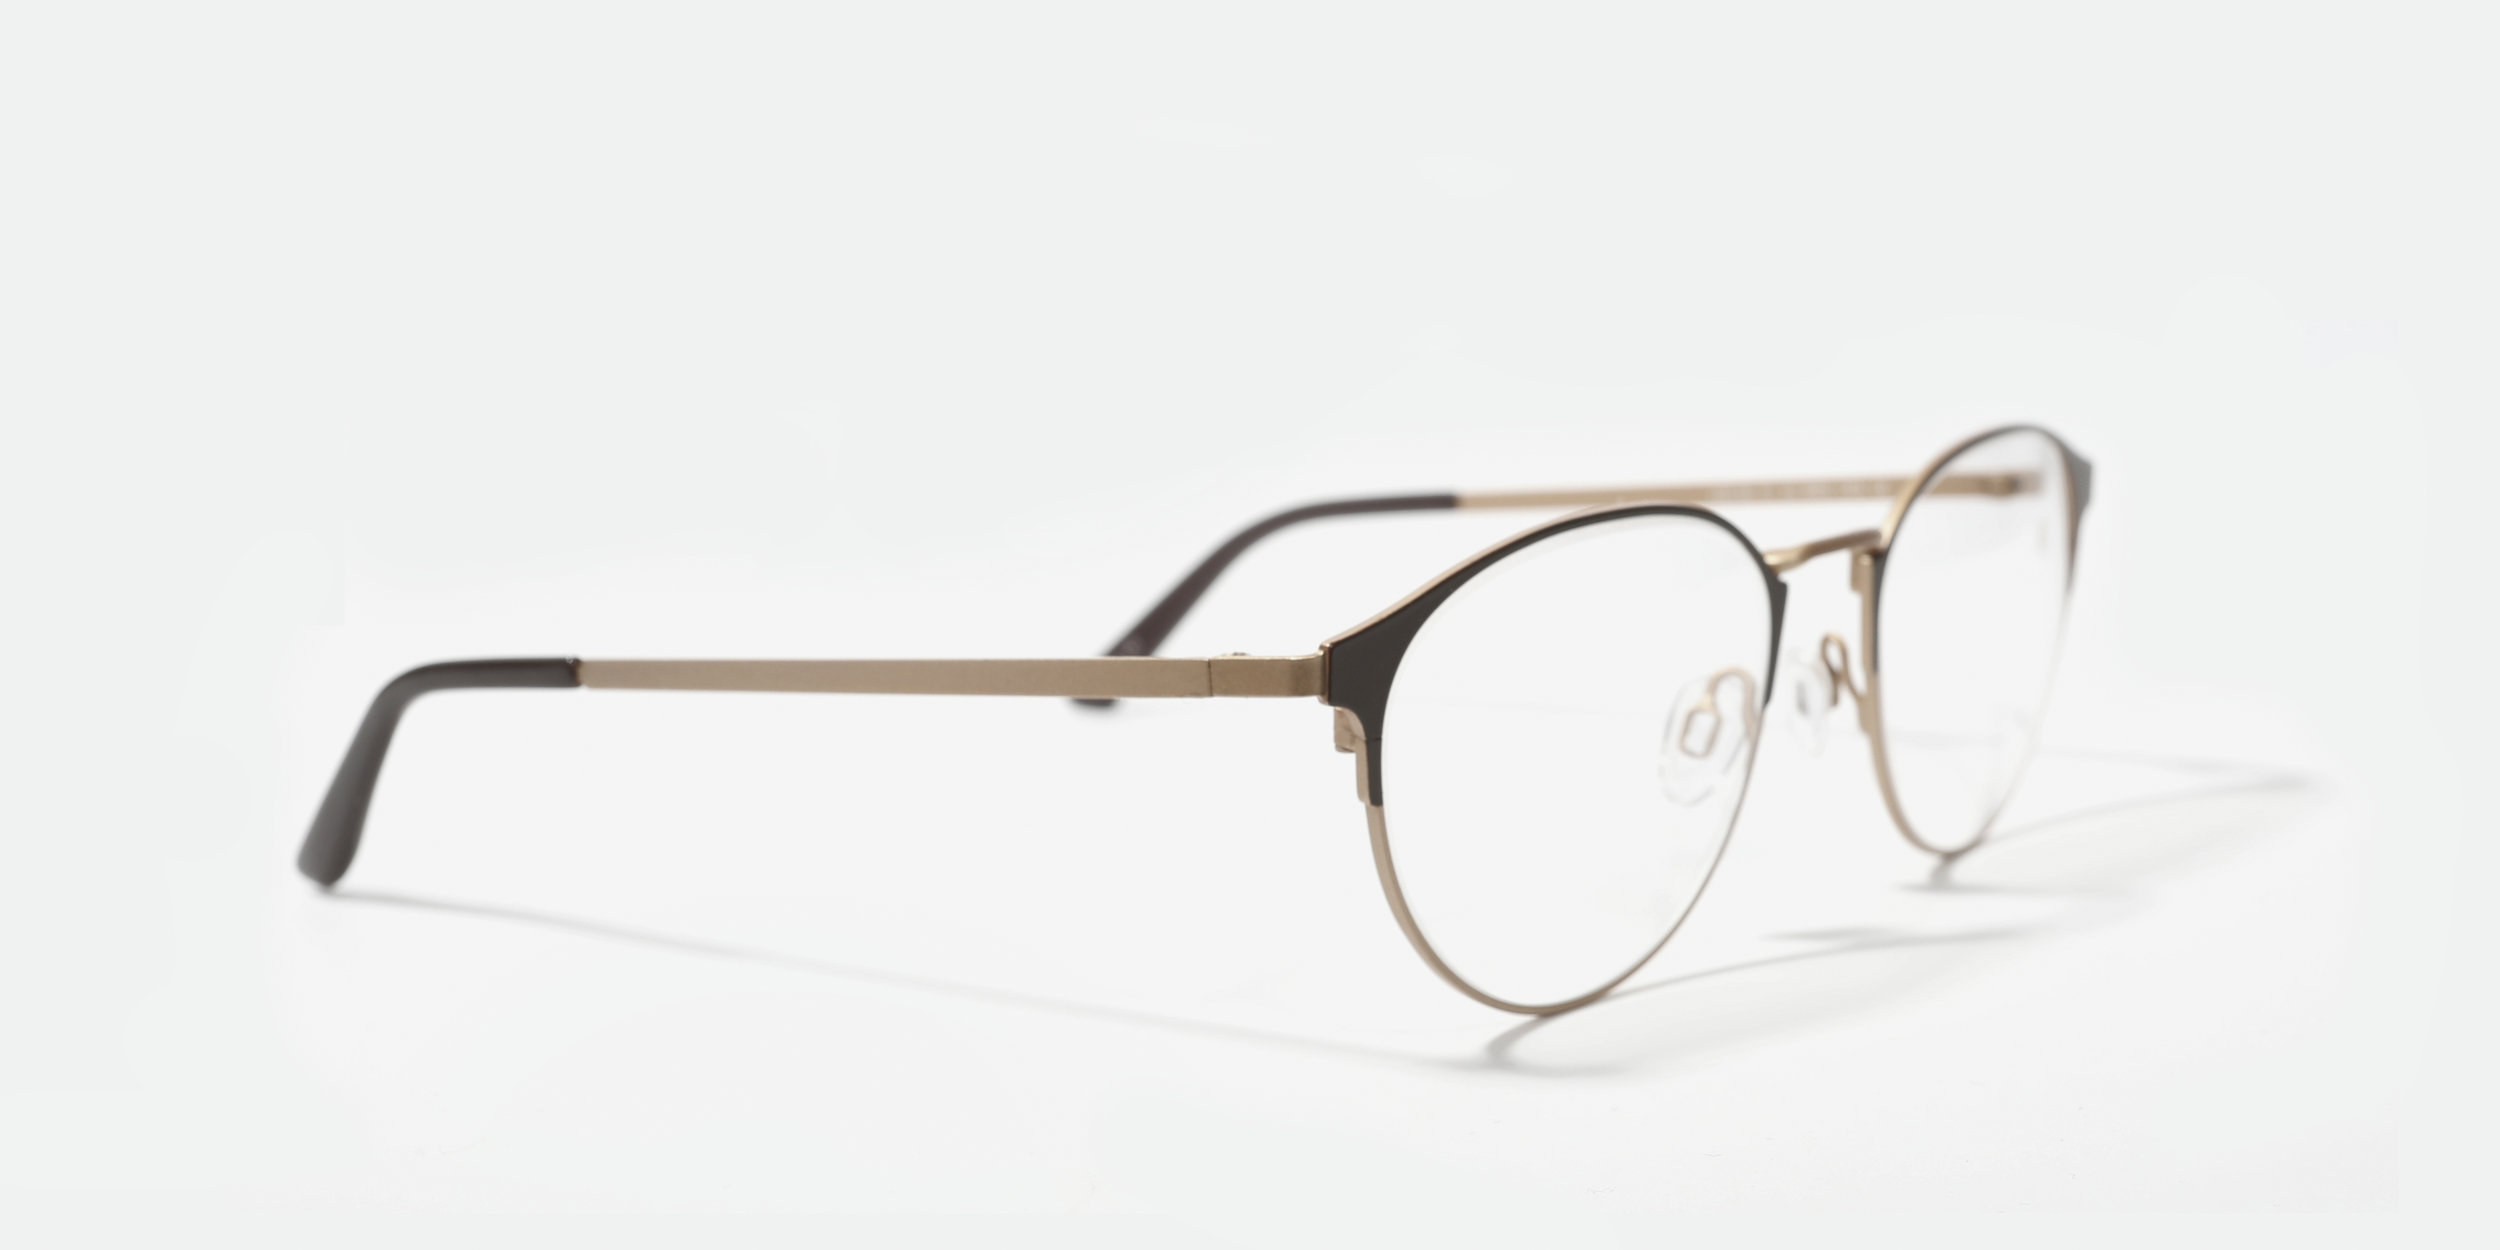 Focused On You - Designing glasses for individuals with exquisite taste, ALFRED SUNG eyewear offers a sleek variety of distinct shapes, colours, and finishes with state-of-the-art features and high-quality materials.